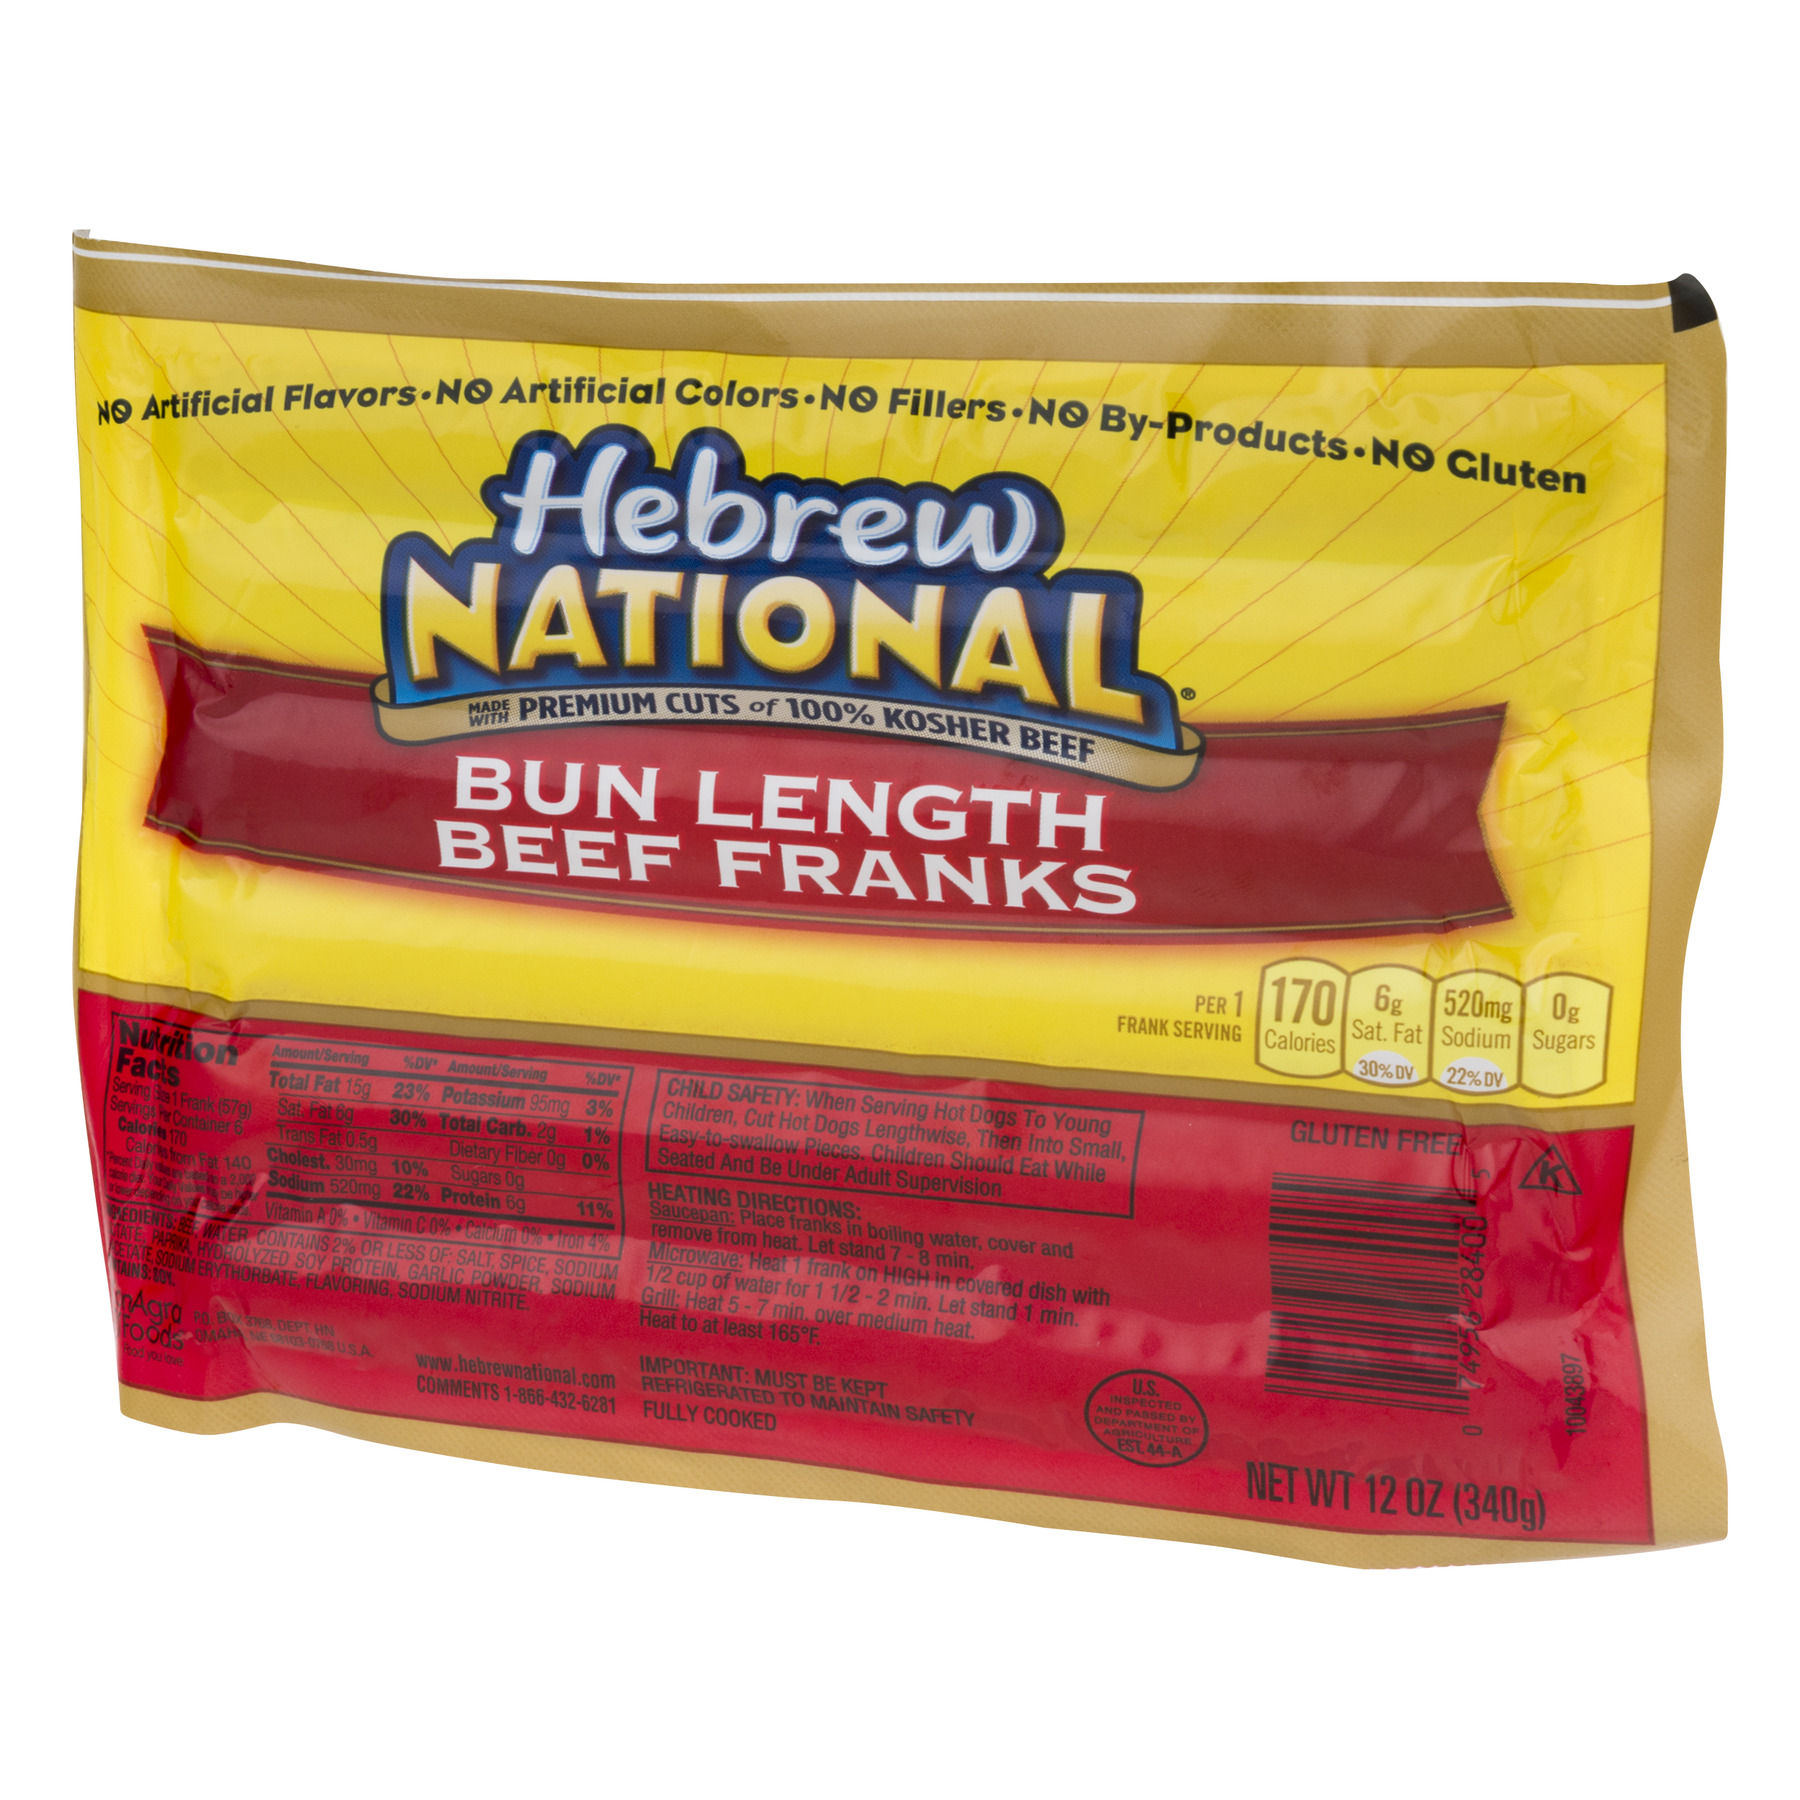 Hebrew National Bun Length Beef Franks, 12 Ounce, 6 Count - Walmart.com